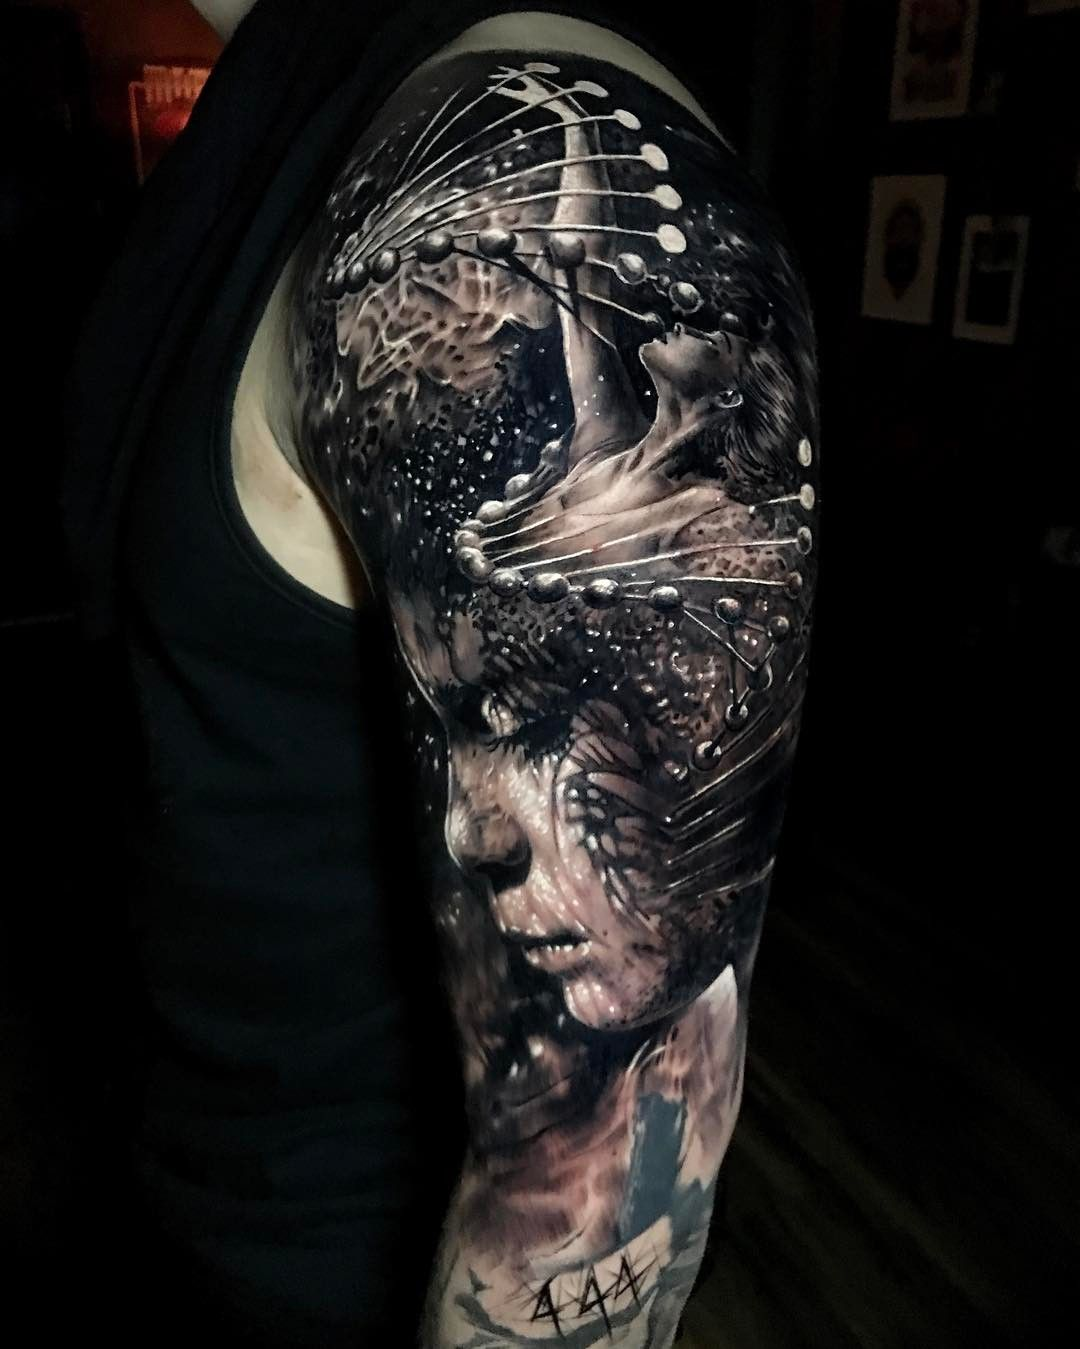 Tattoo Artist Jak Connolly Color And Black Grey Authors Style Tattoo Realism Uk Tattoo Artists Creepy Tattoos Black And Grey Tattoos